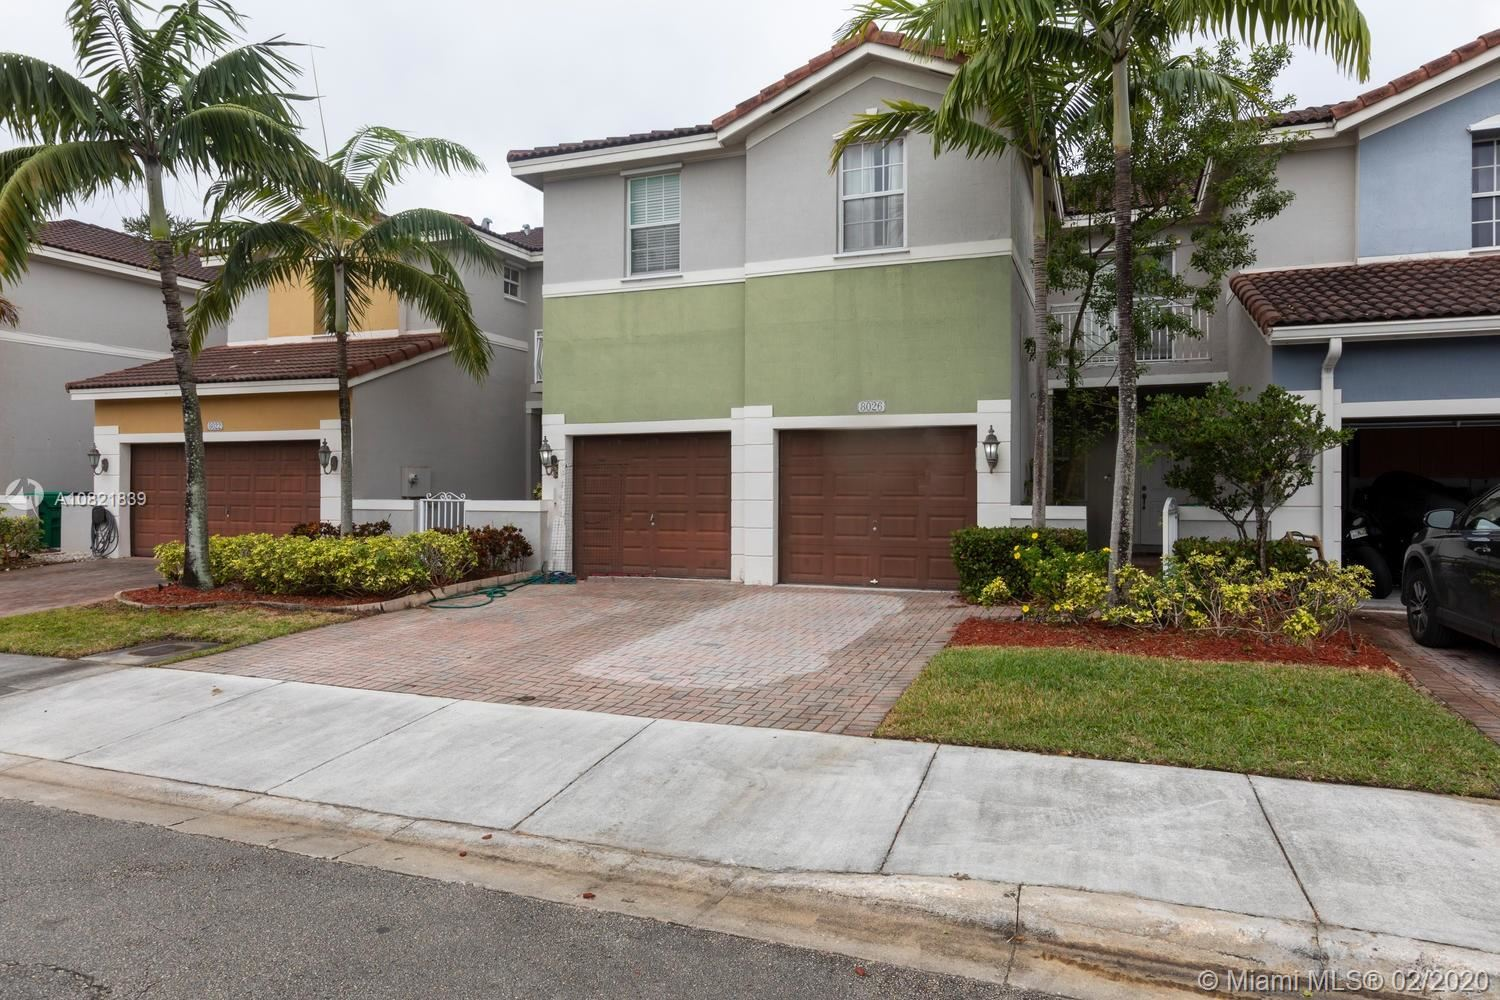 8026 NW 116th Ave, Doral, FL 33178 - #: A10821839